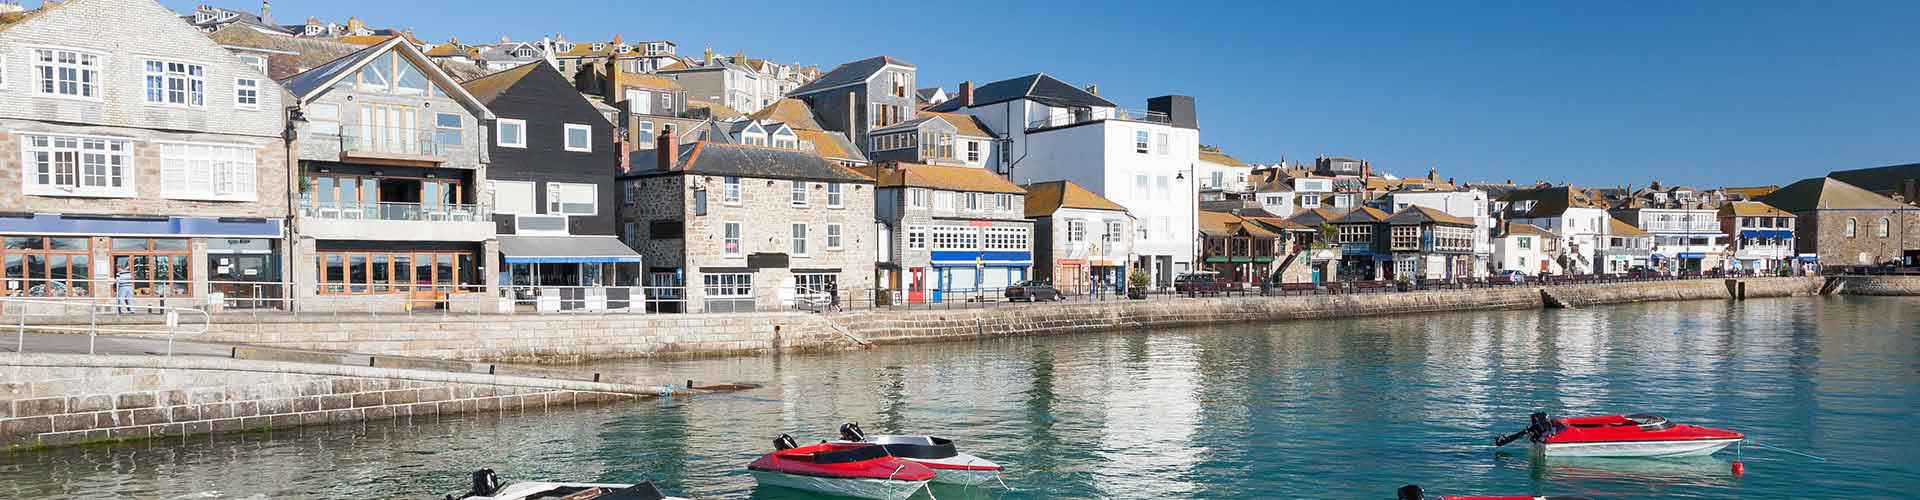 St Ives – Hostels in St Ives. Maps for St Ives, Photos and Reviews for each hostel in St Ives.